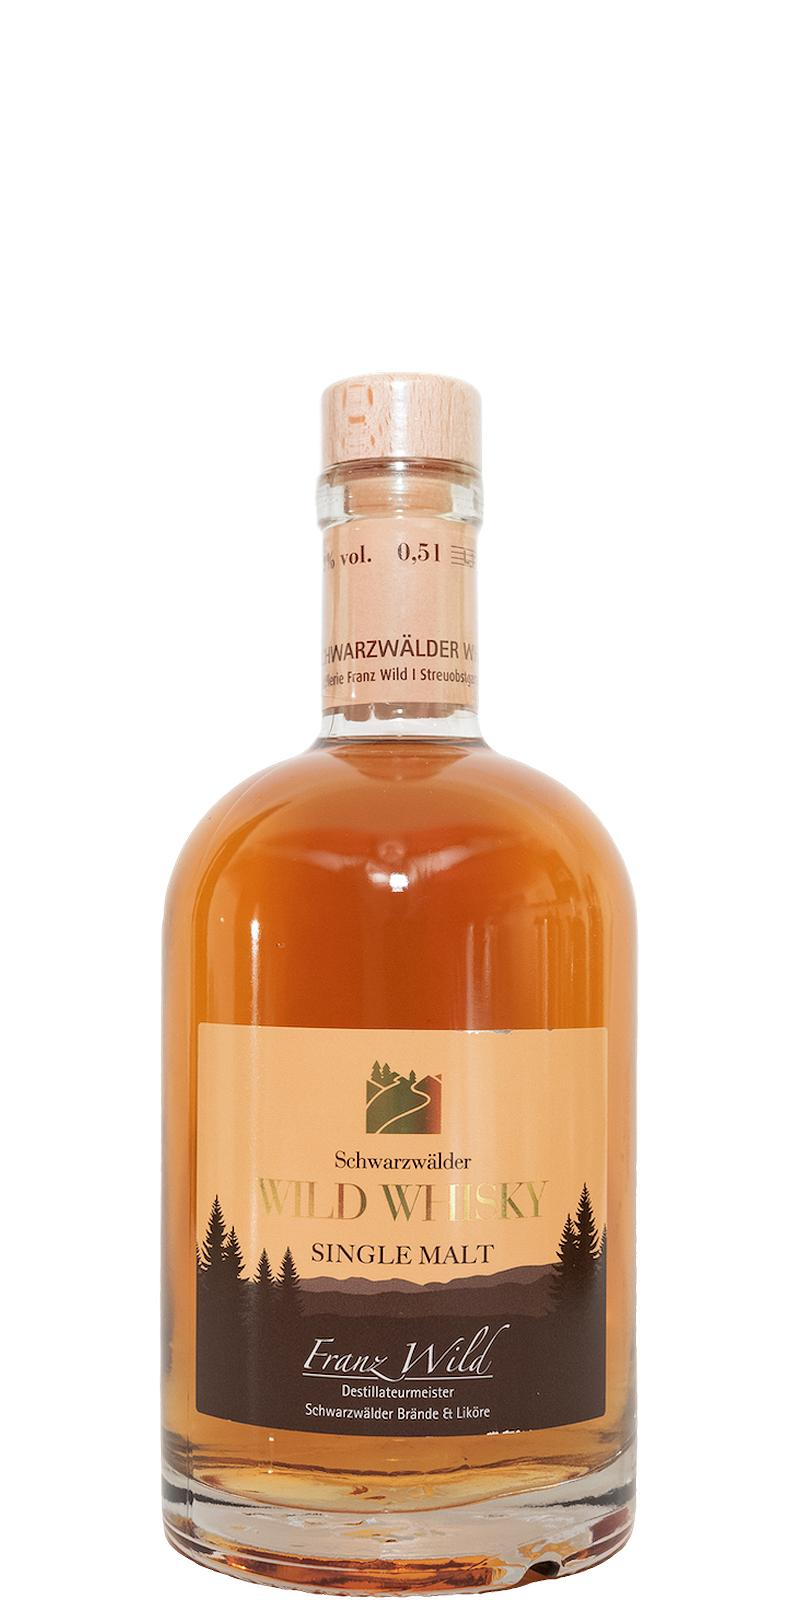 Wild Whisky Schwarzwälder Single Malt